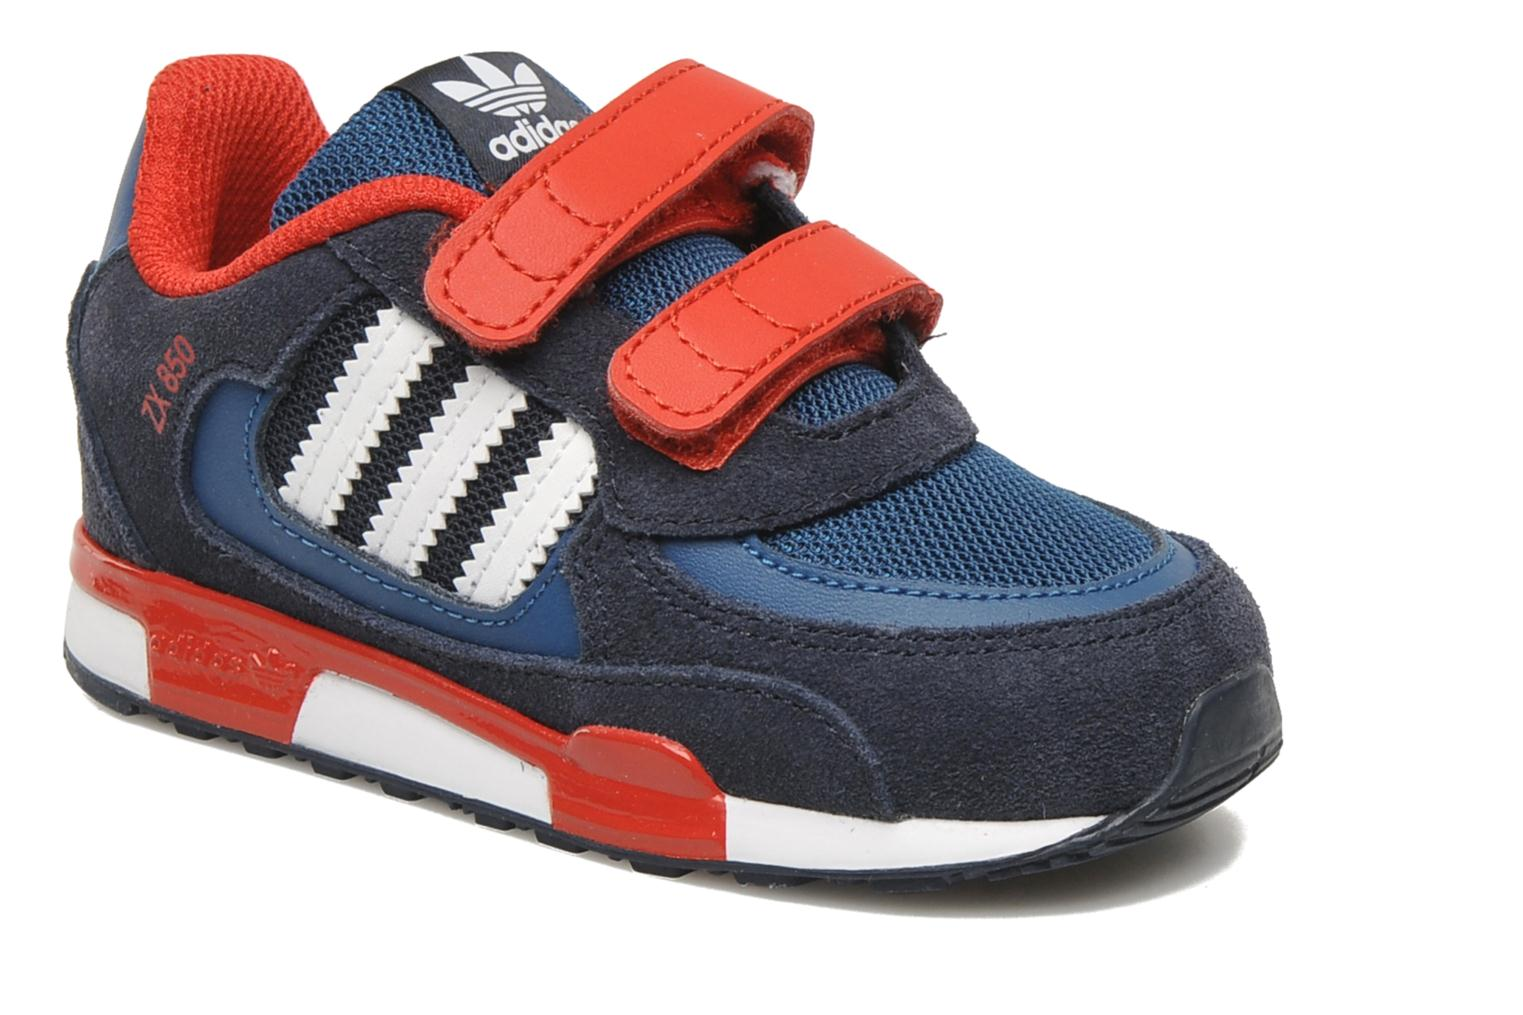 official photos 744e2 3ae79 new zealand adidas zx 850 mens blue b5b61 c4783  low cost sneakers adidas  originals zx 850 cf i blauw detail 0129b 67f49